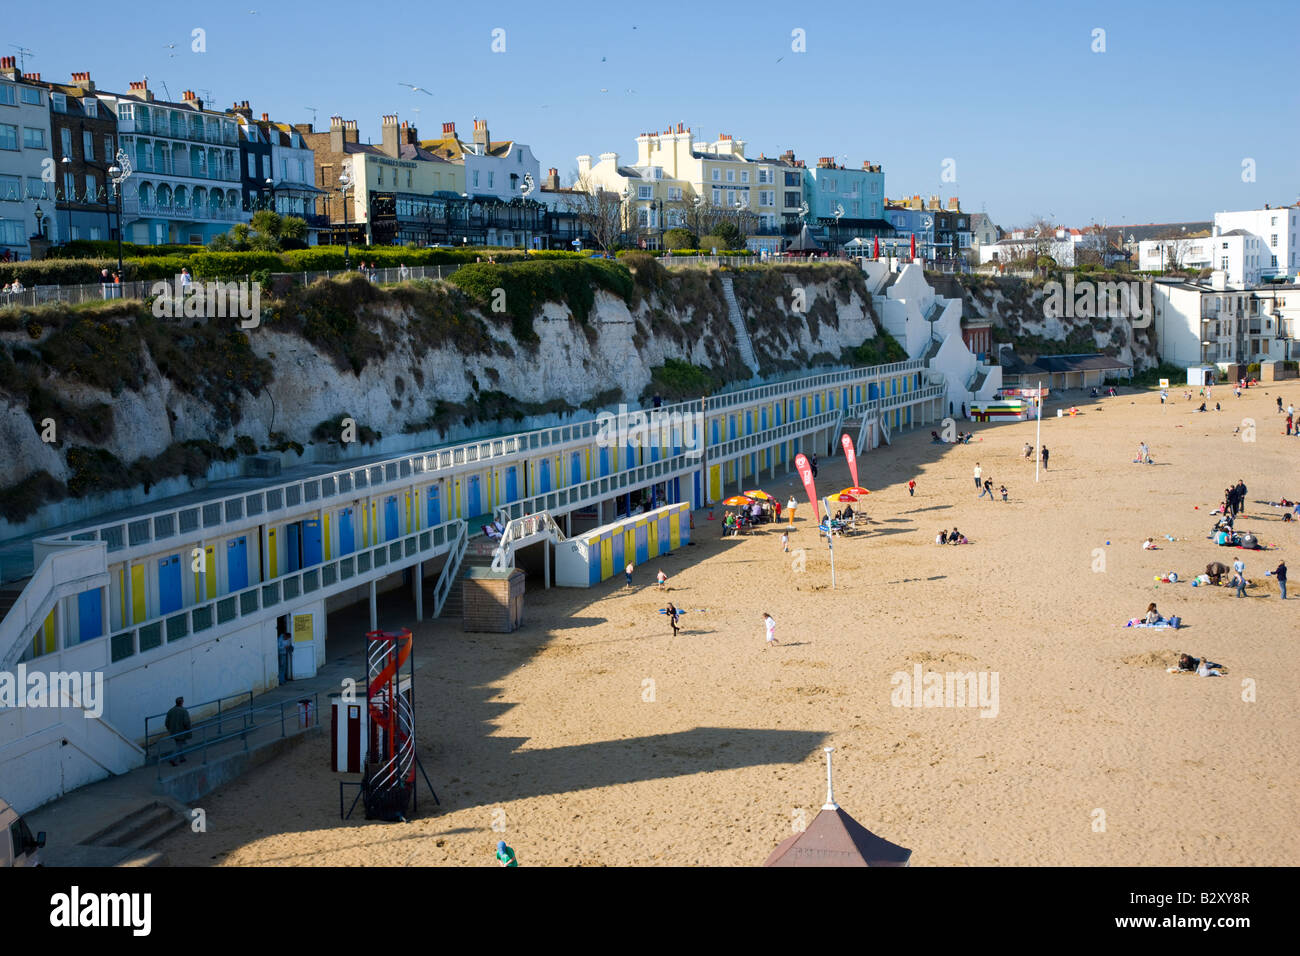 The beach and harbour at Broadstairs in Kent - Stock Image